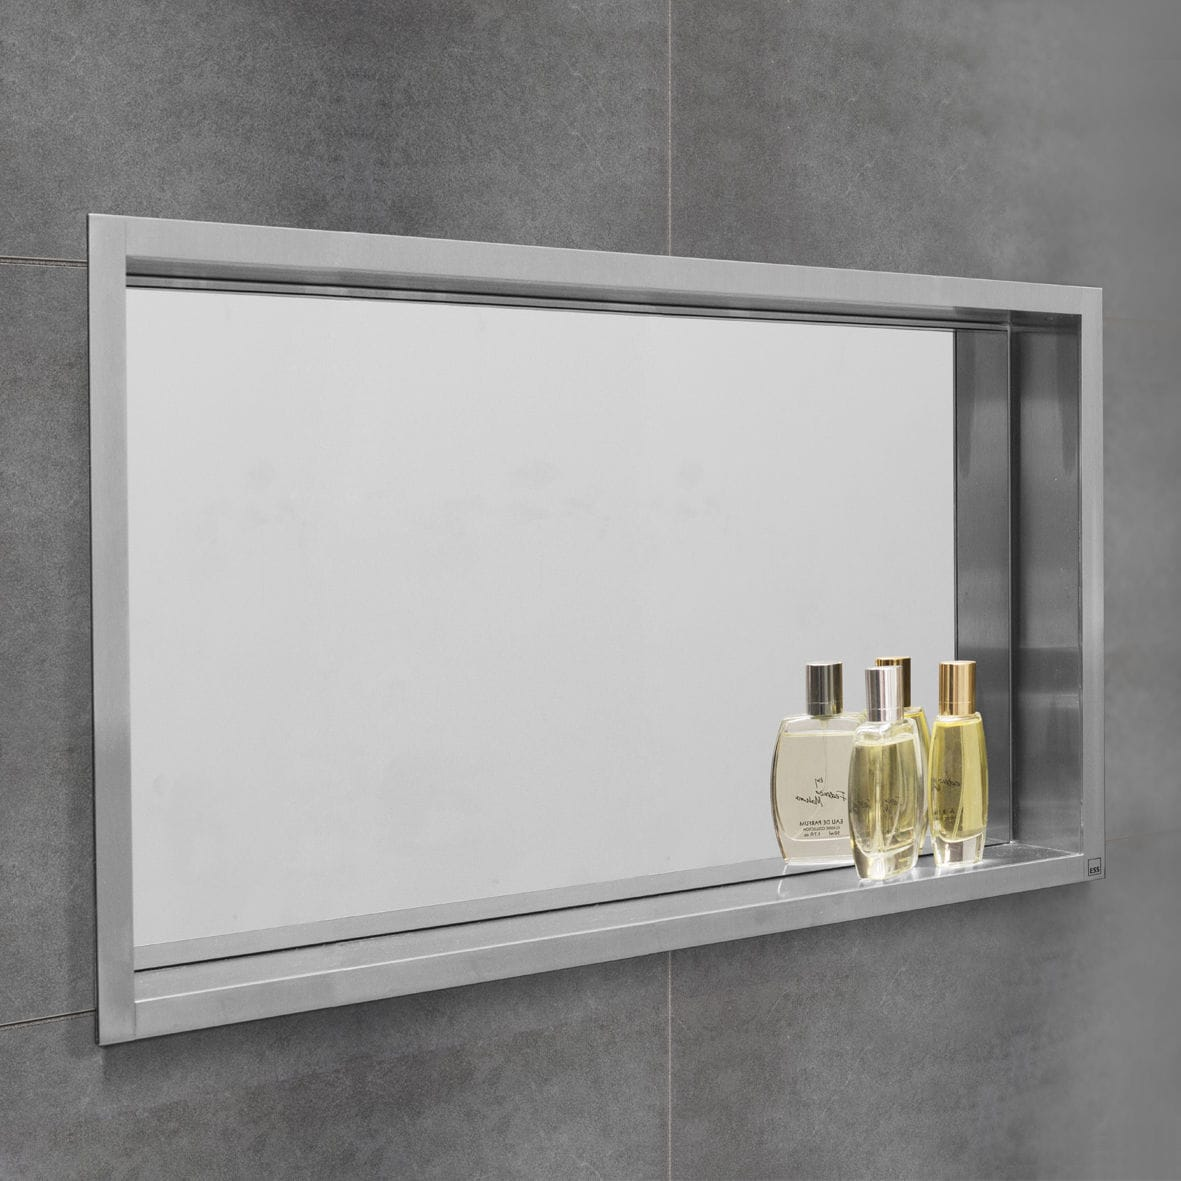 Mirrored Bathroom Wall Cabinet Ess Container Box Niche With Mirror